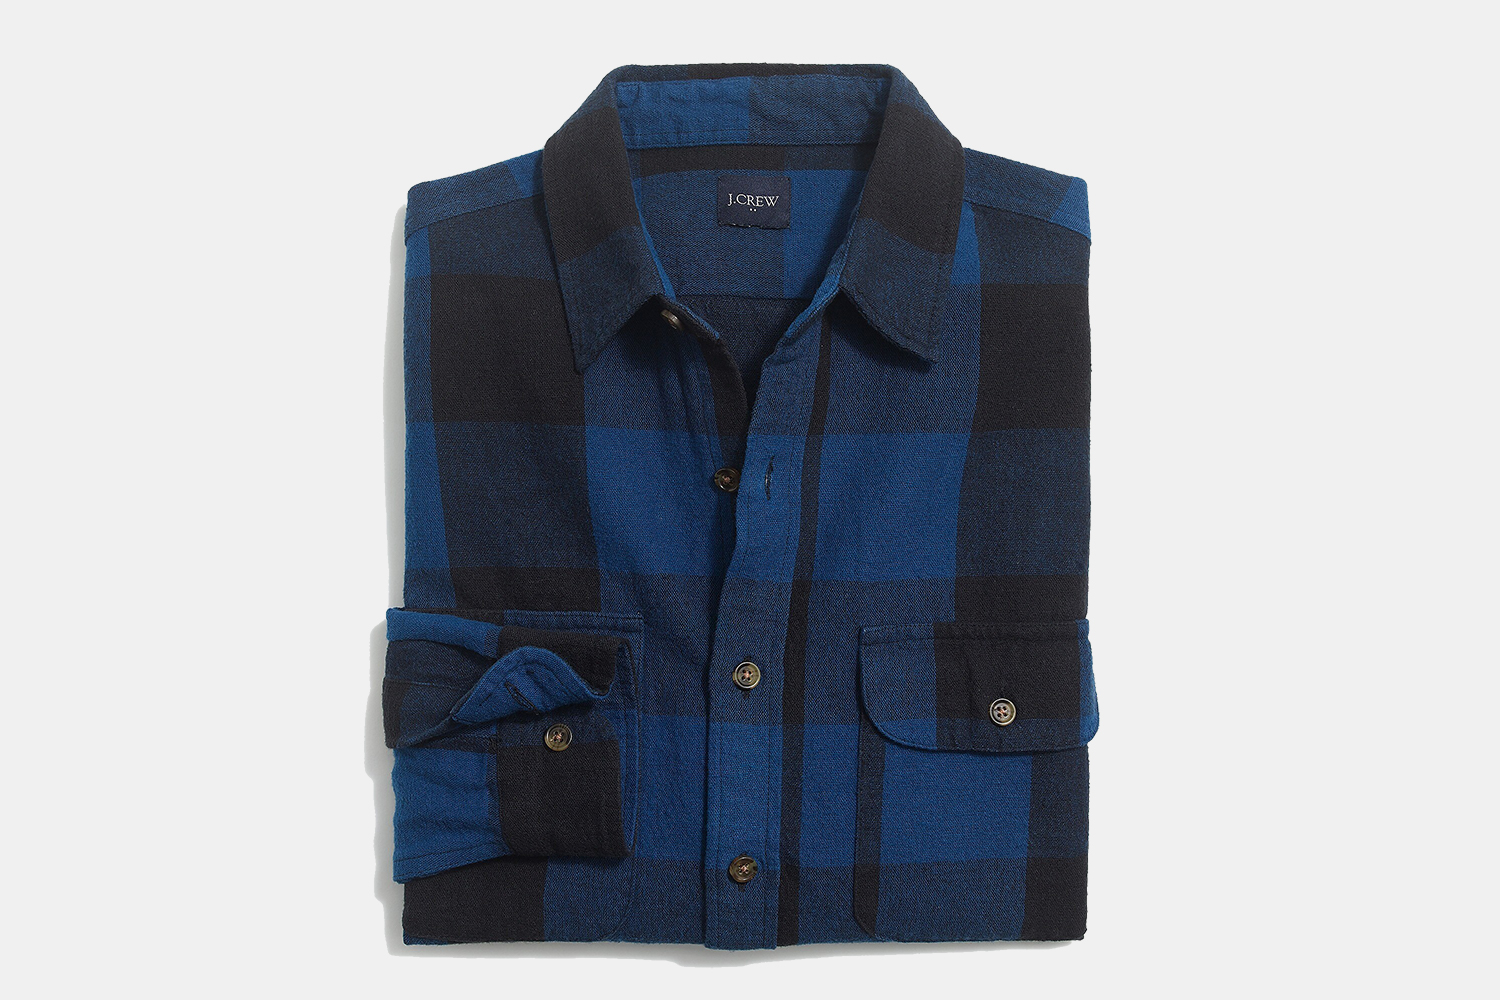 Deal: Shirt Jackets Under $35? J.Crew Factory Has You Covered, Literally.